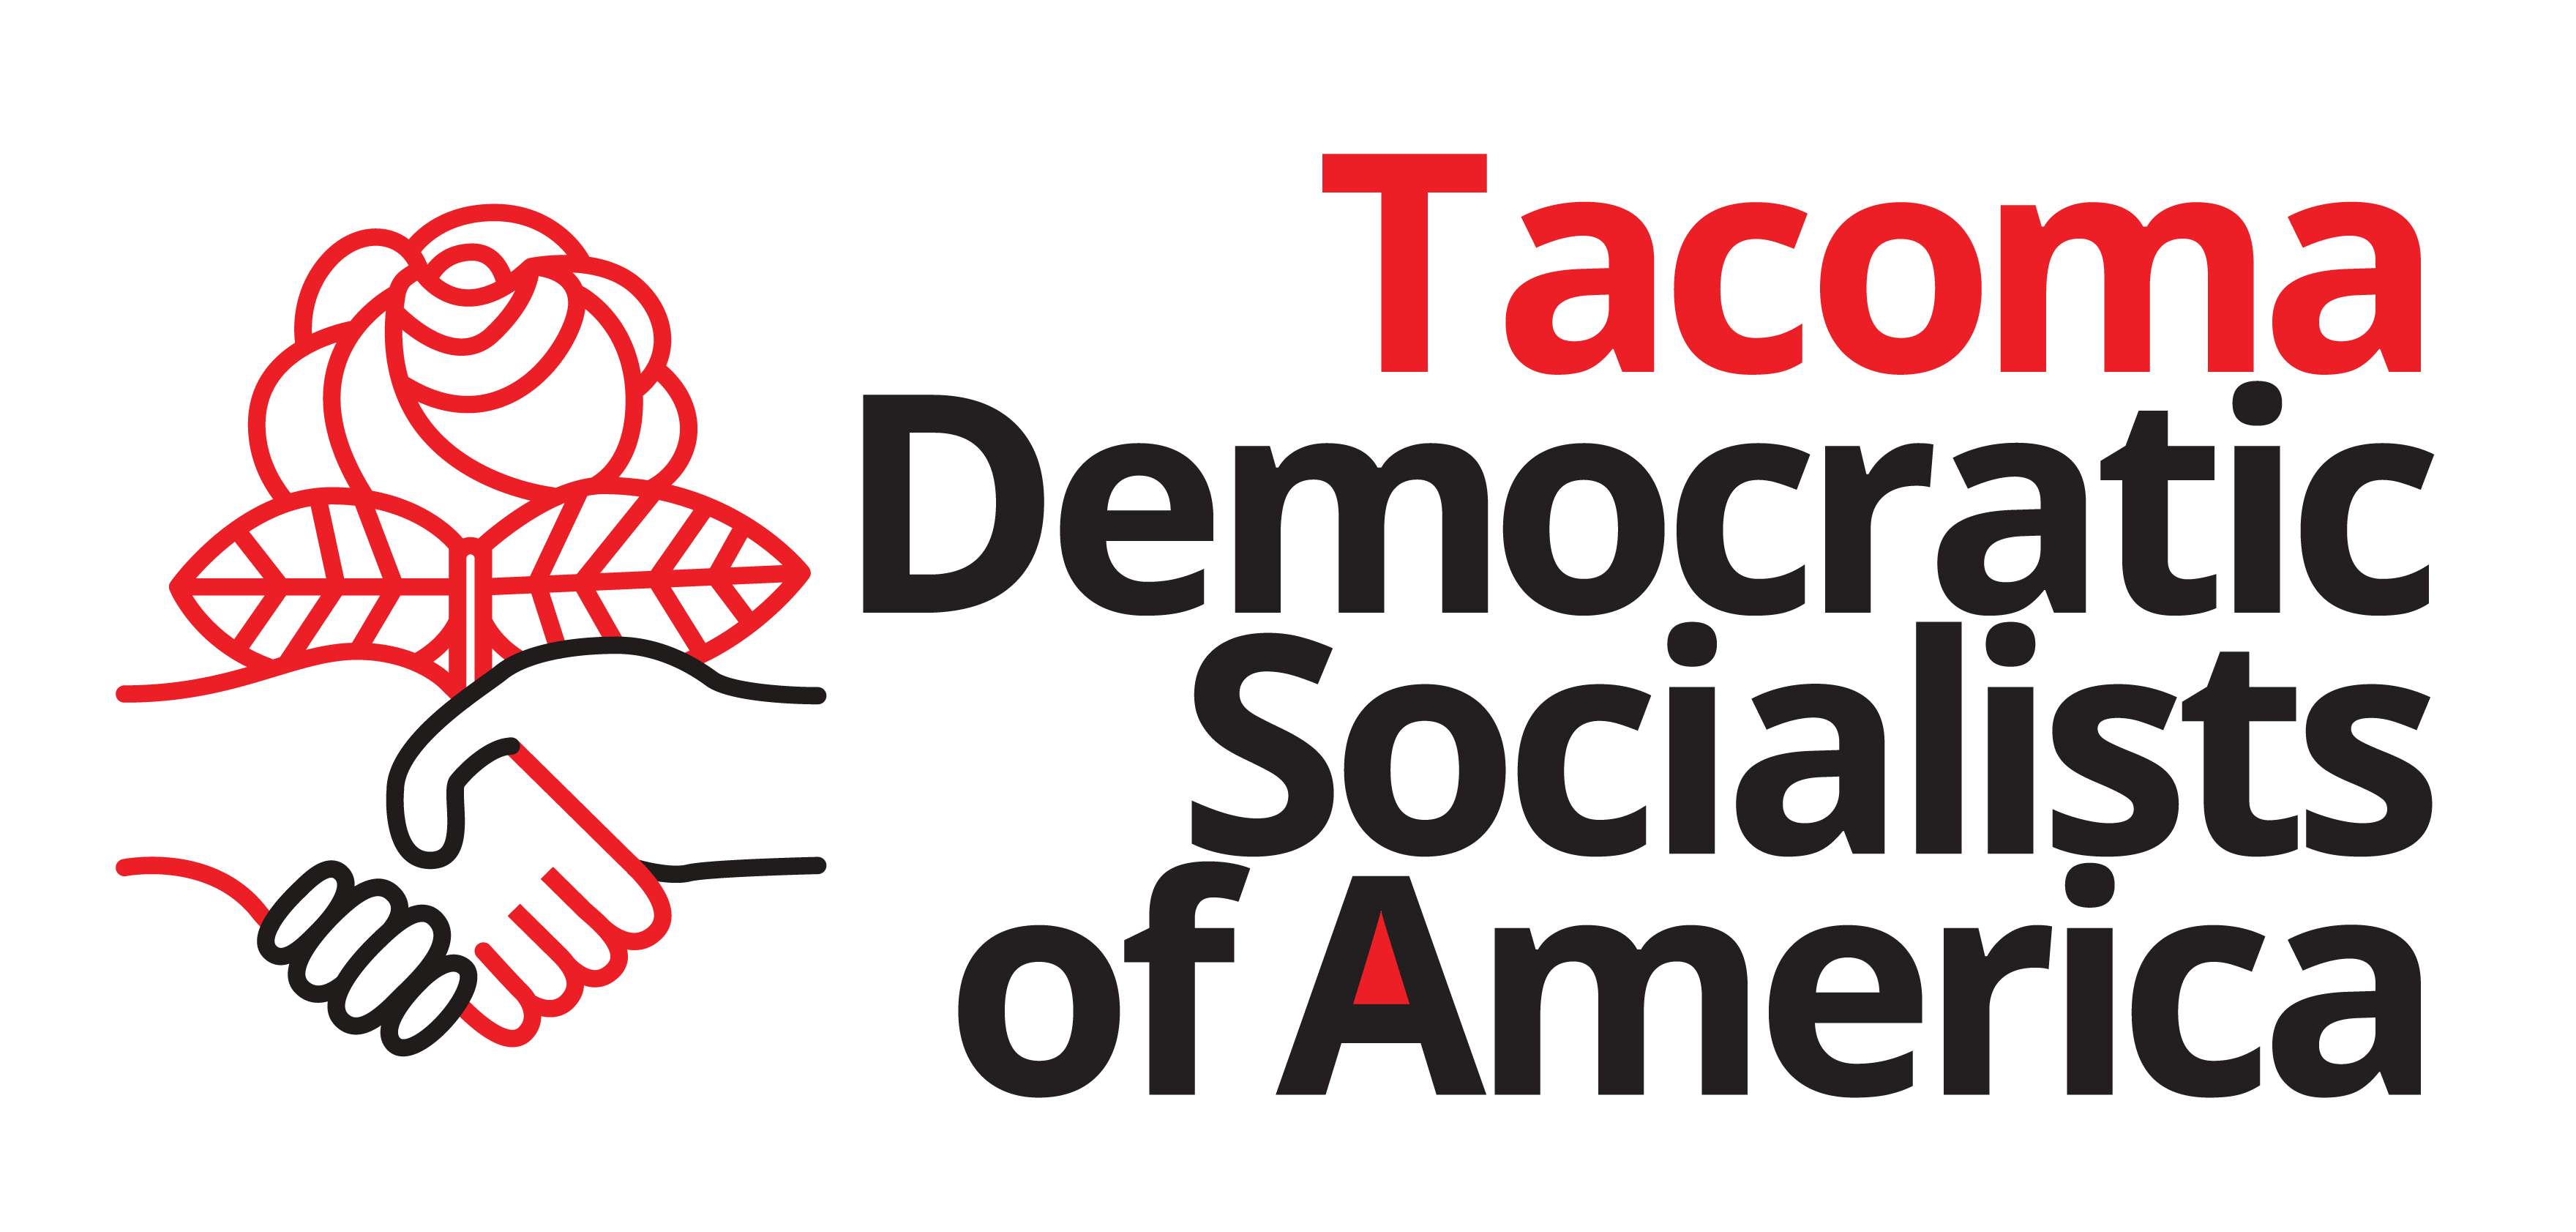 Tacoma Democratic Socialists of America